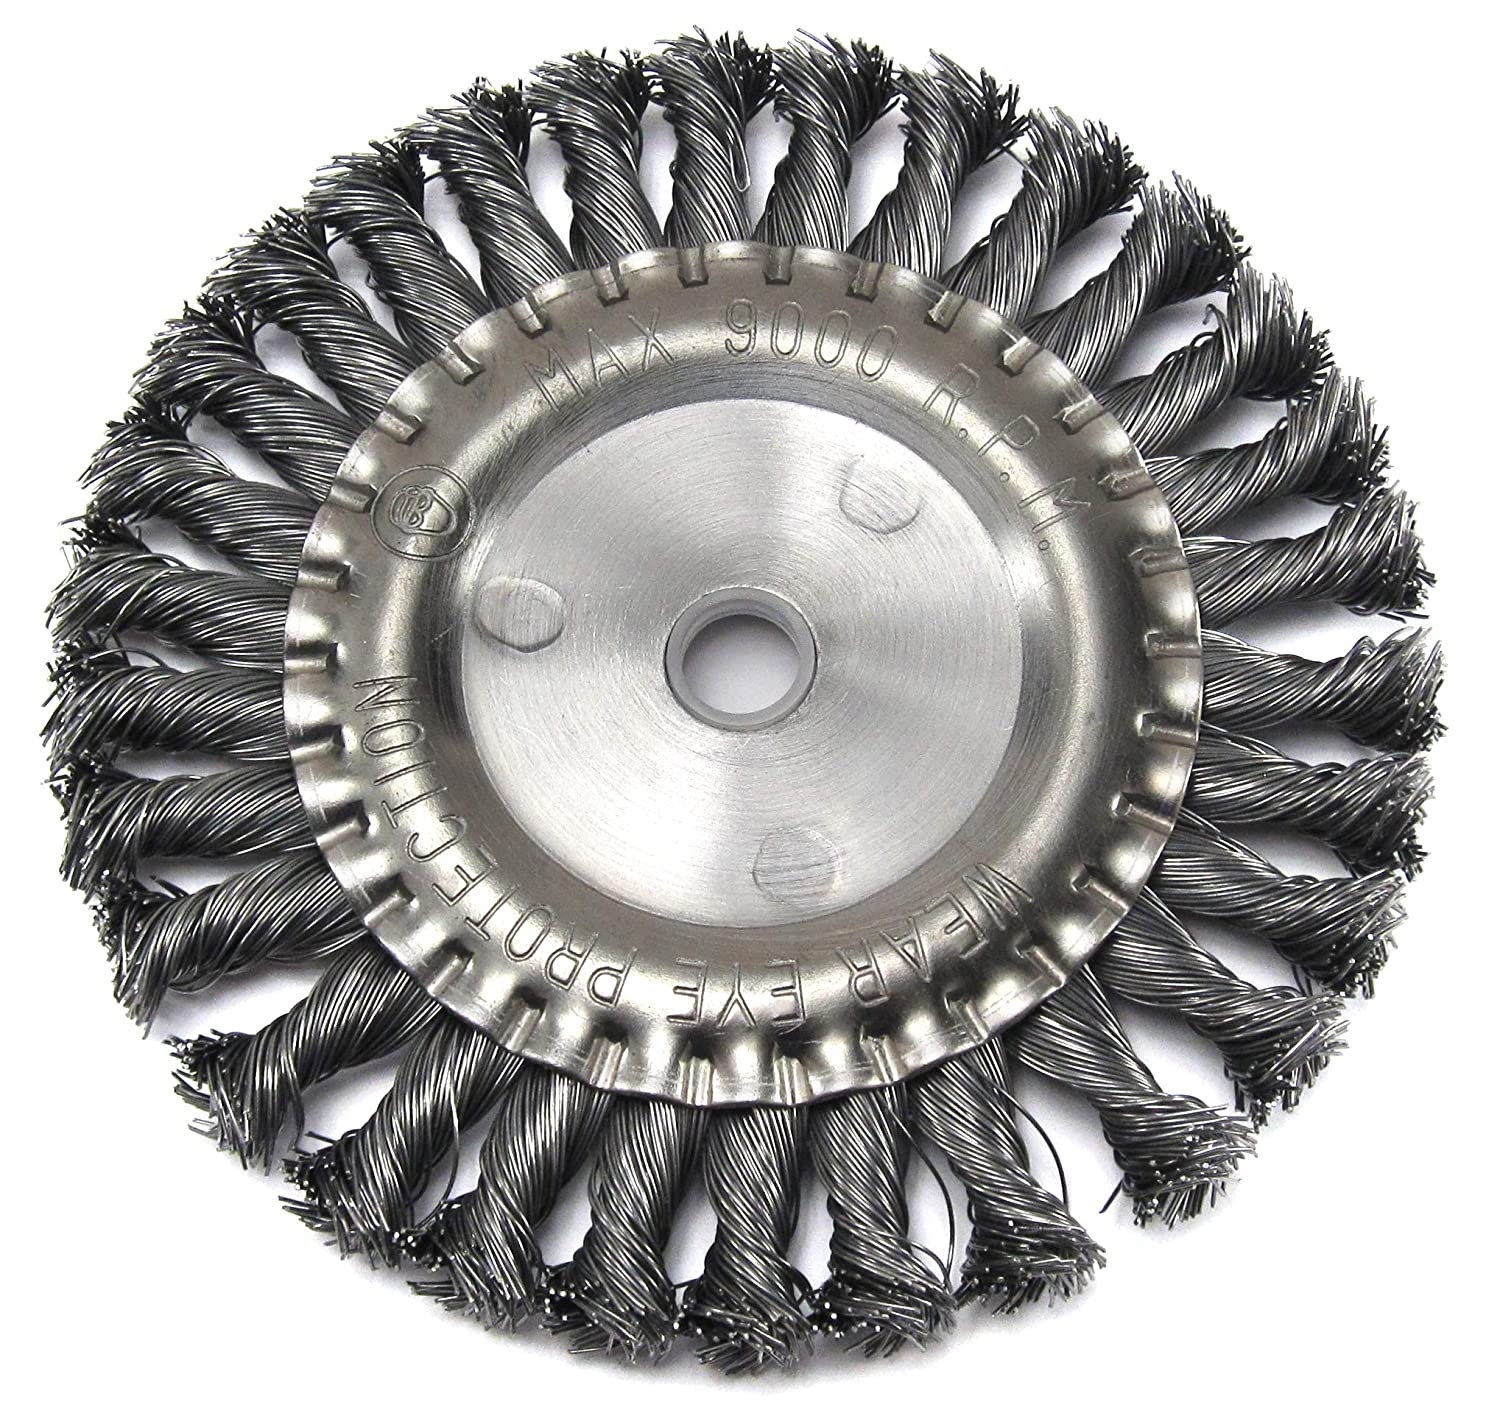 Shop-Tek 80926 6-Inch by 22.2 Hole Twist Knotted Wire Wheel Brush